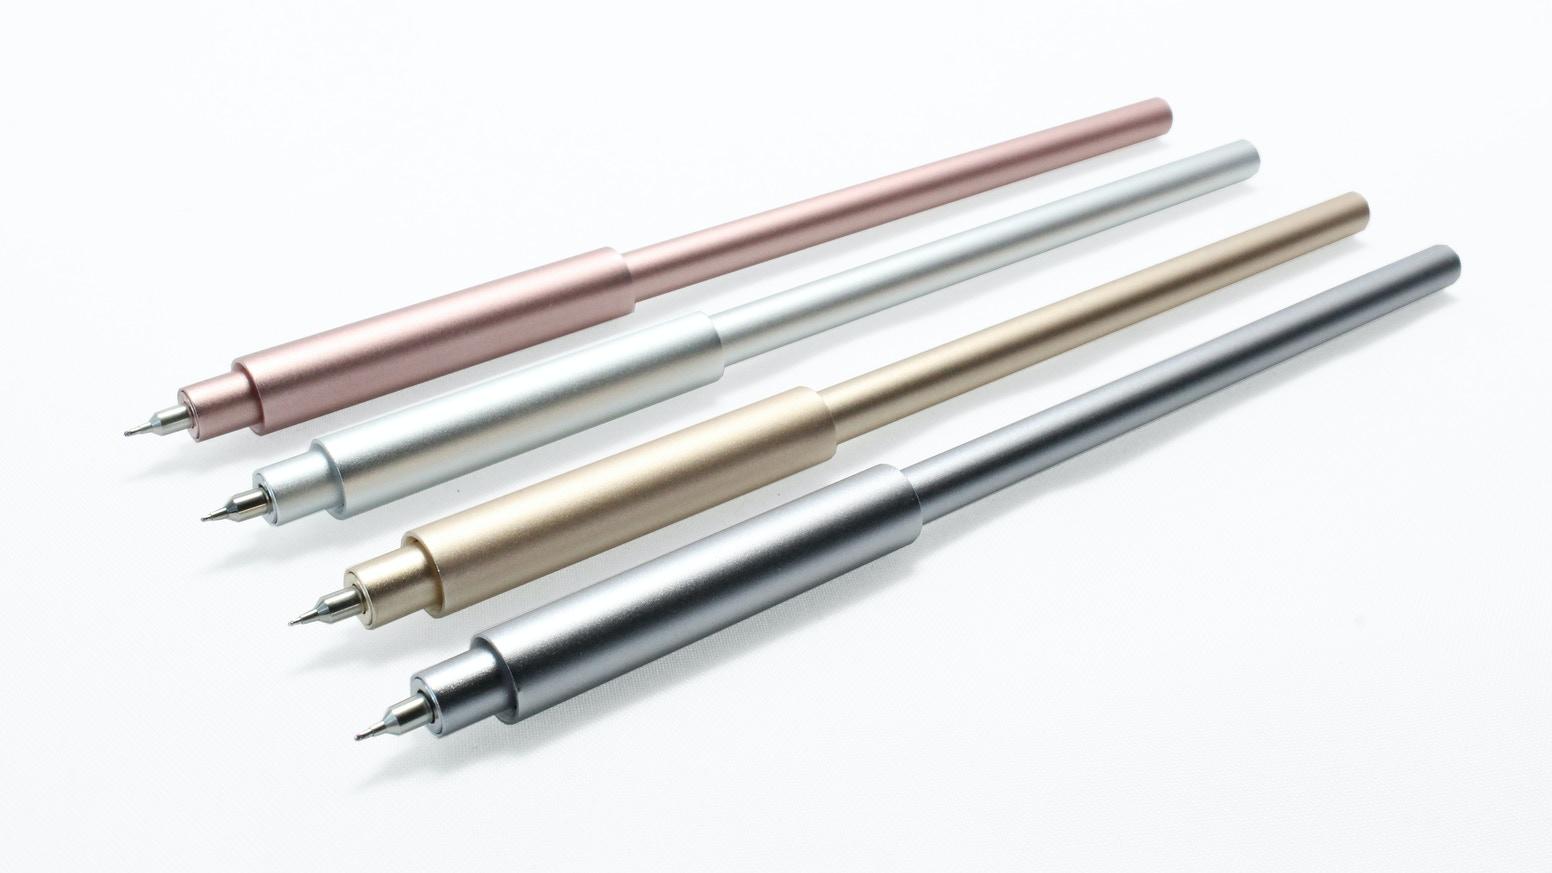 Pen Uno is a super slim all aluminum pen that uses the Hi-Tec-